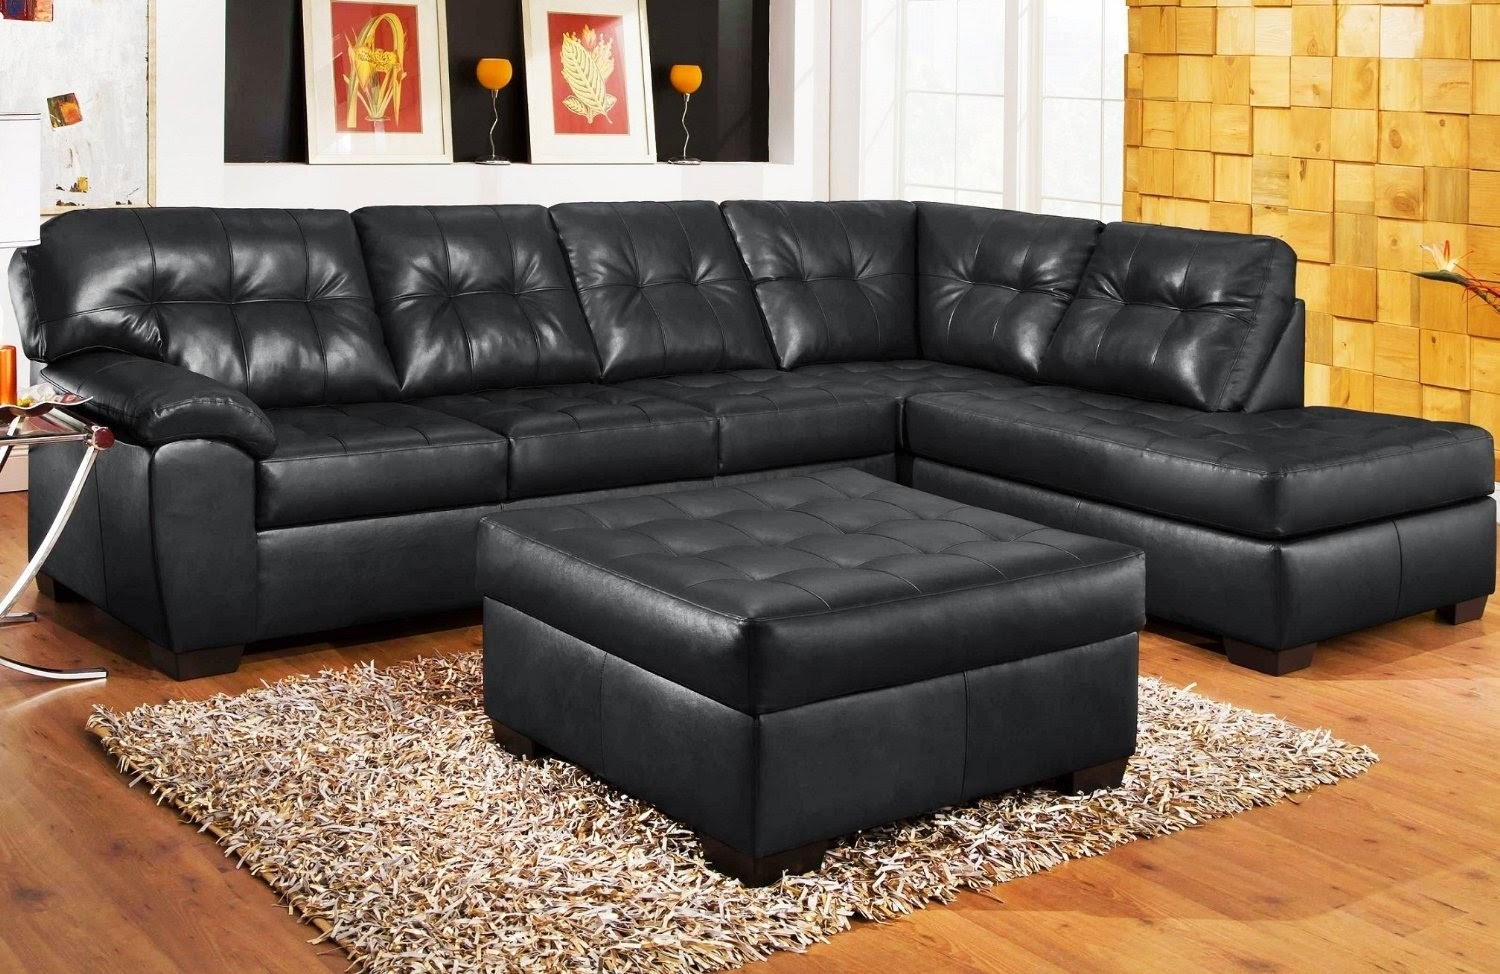 Black Couch: Black Sectional Couch Throughout Black Sectional Sofas (View 3 of 10)